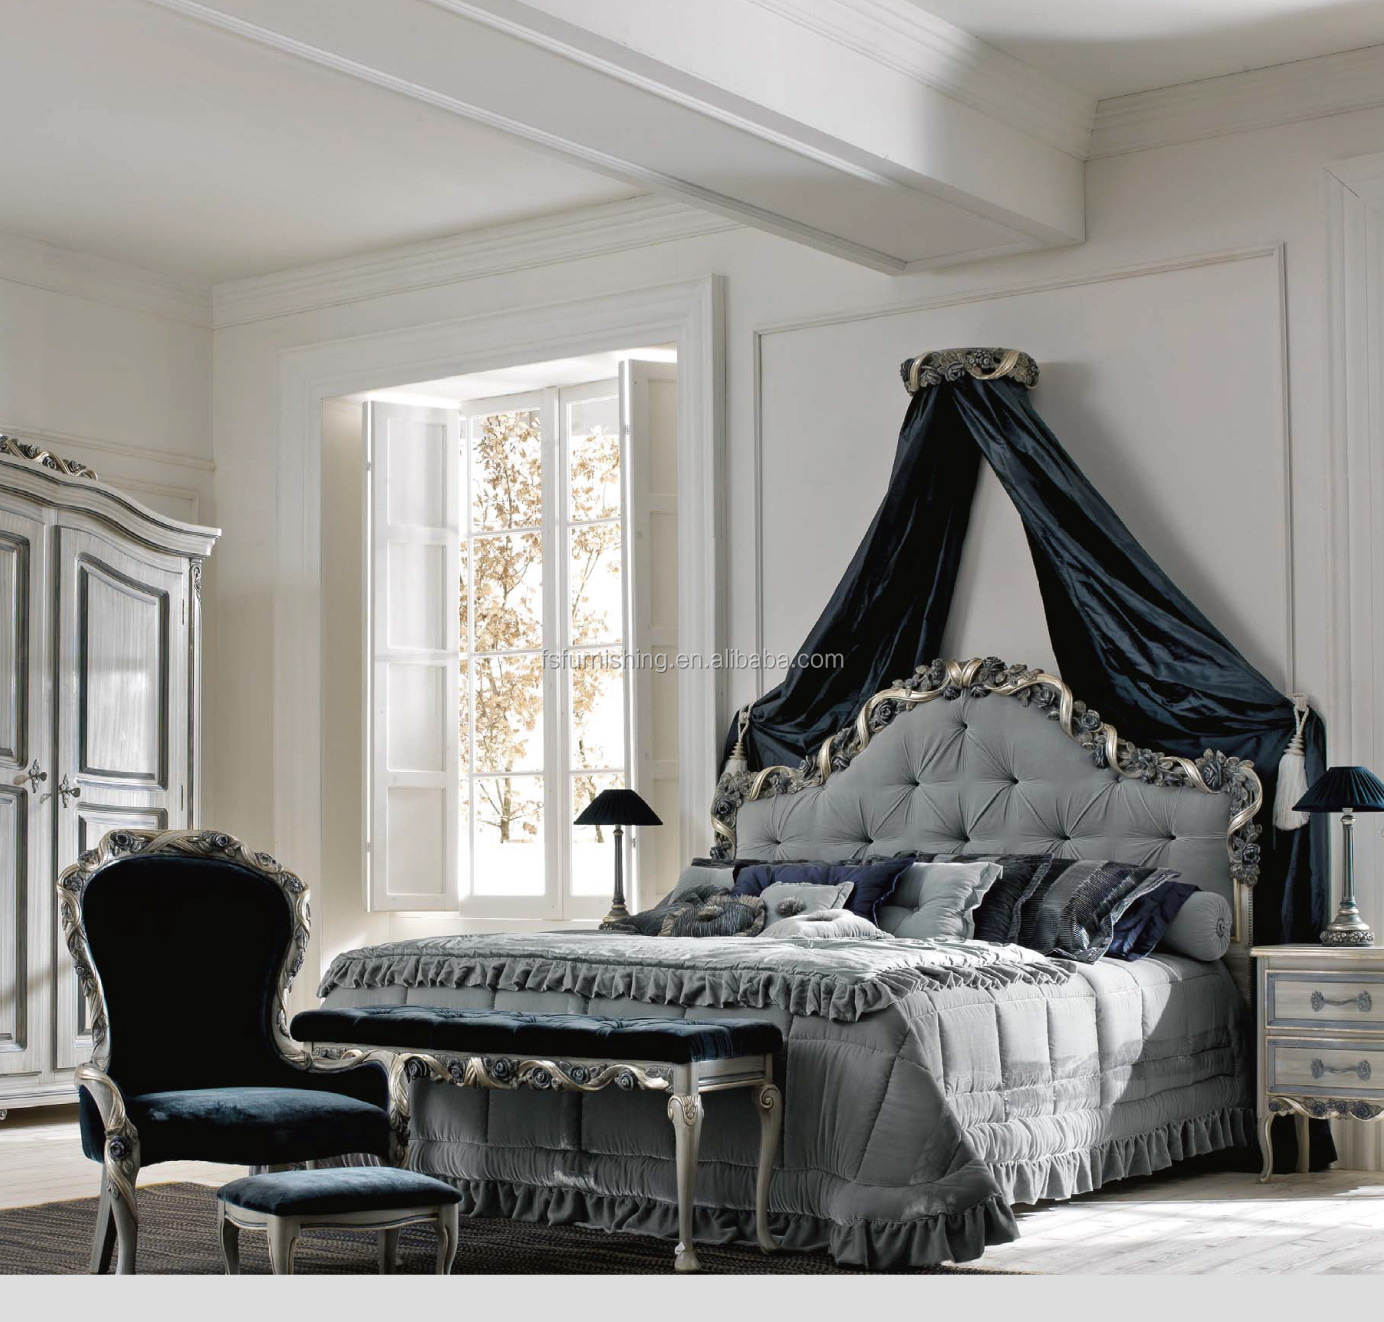 Rococo Luxury Antique Victorian Distressed French Bedroom Elegant Blue  Reproduction Bed Royal Luxury Furniture - Buy Classic Distressed Bedroom ...